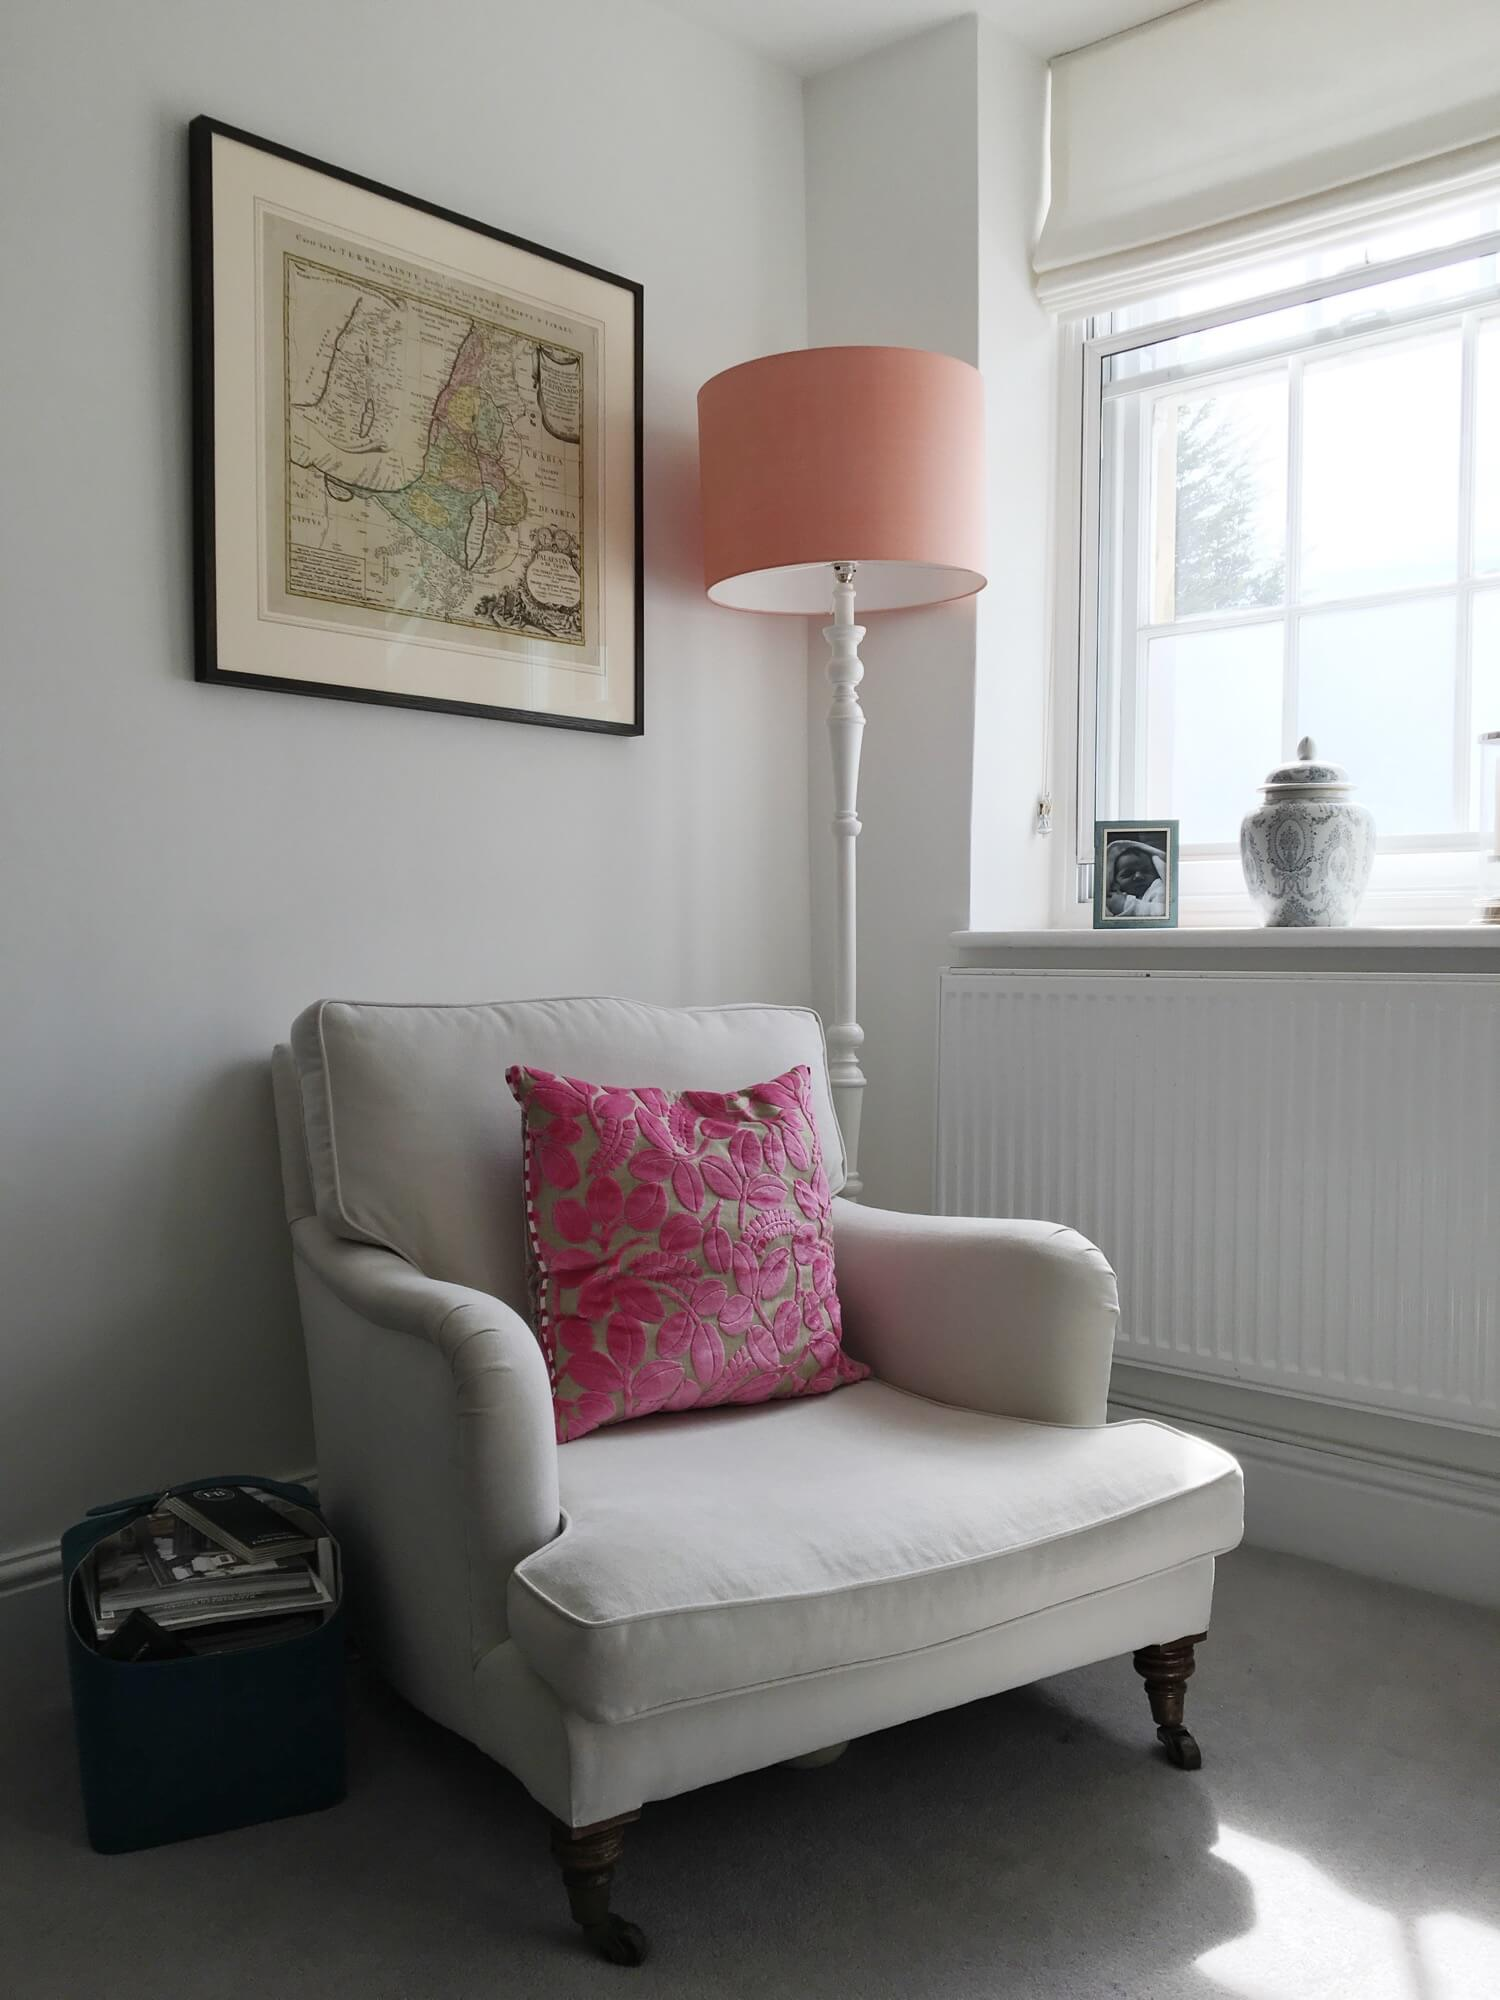 This reupholstered armchair is part of Sarah's Georgian living room tour